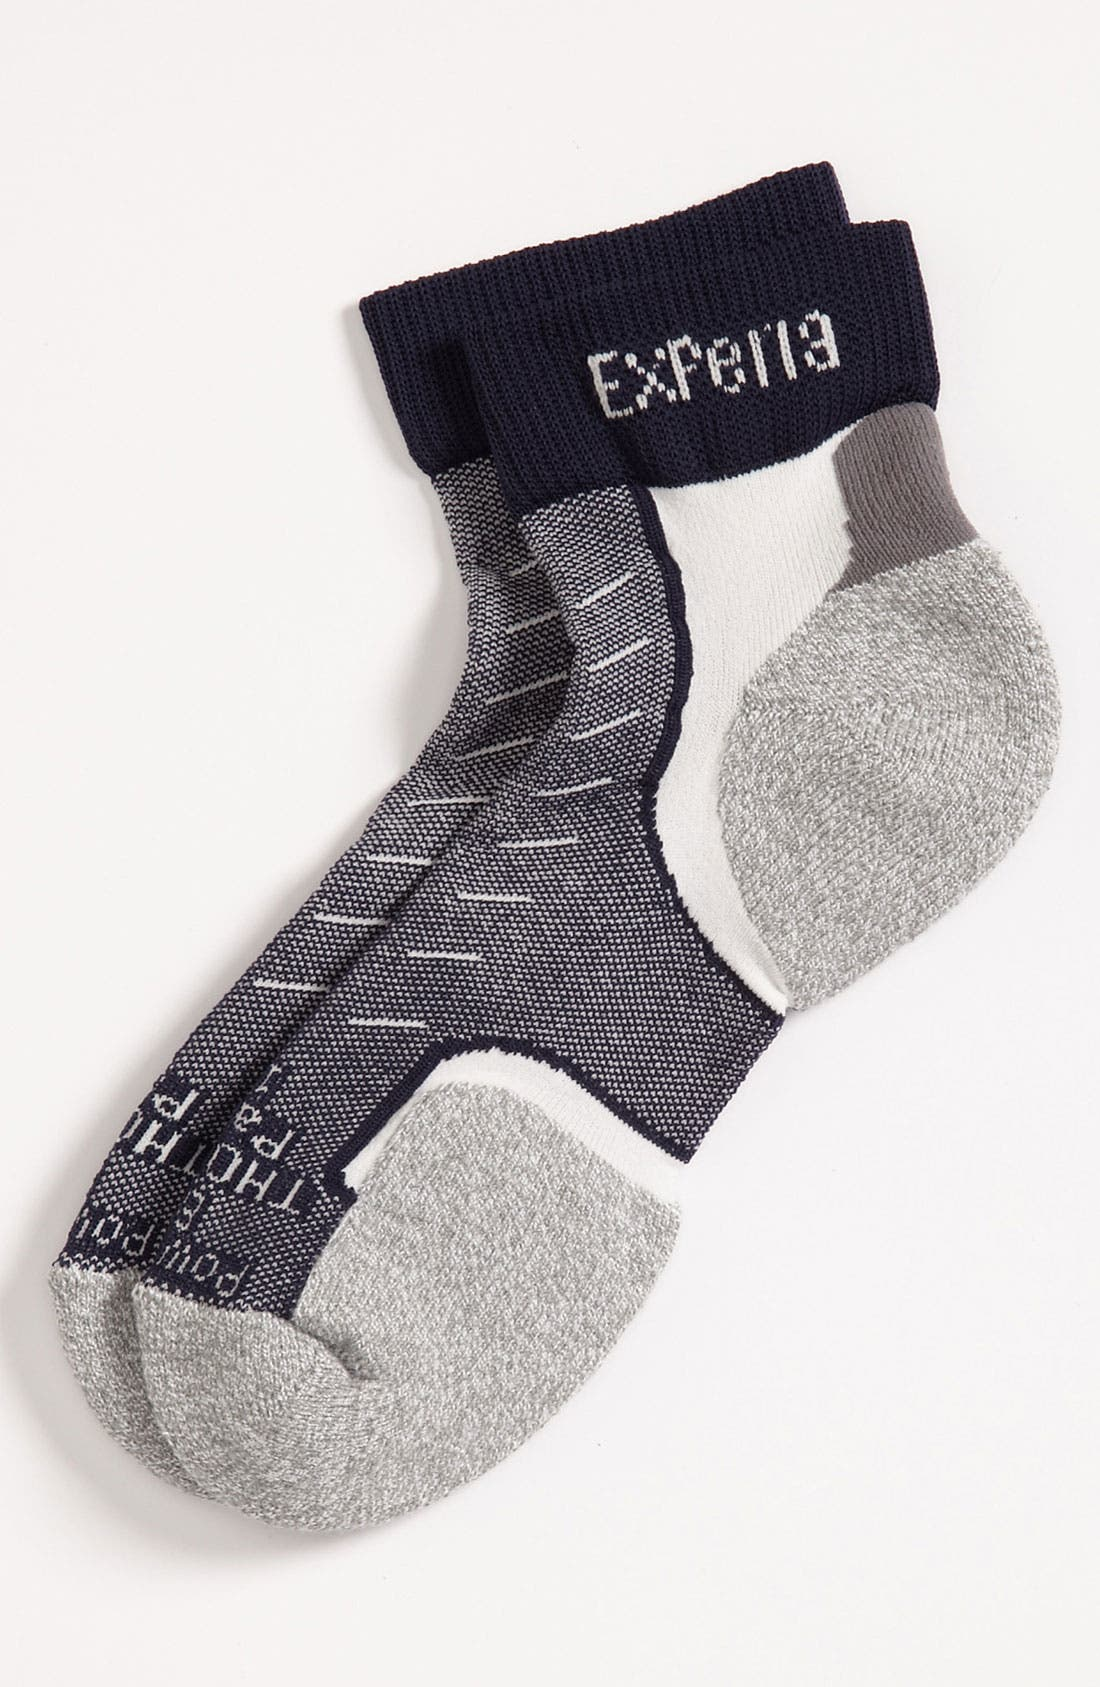 Alternate Image 1 Selected - Thorlo 'Experia' Mini Crew Socks